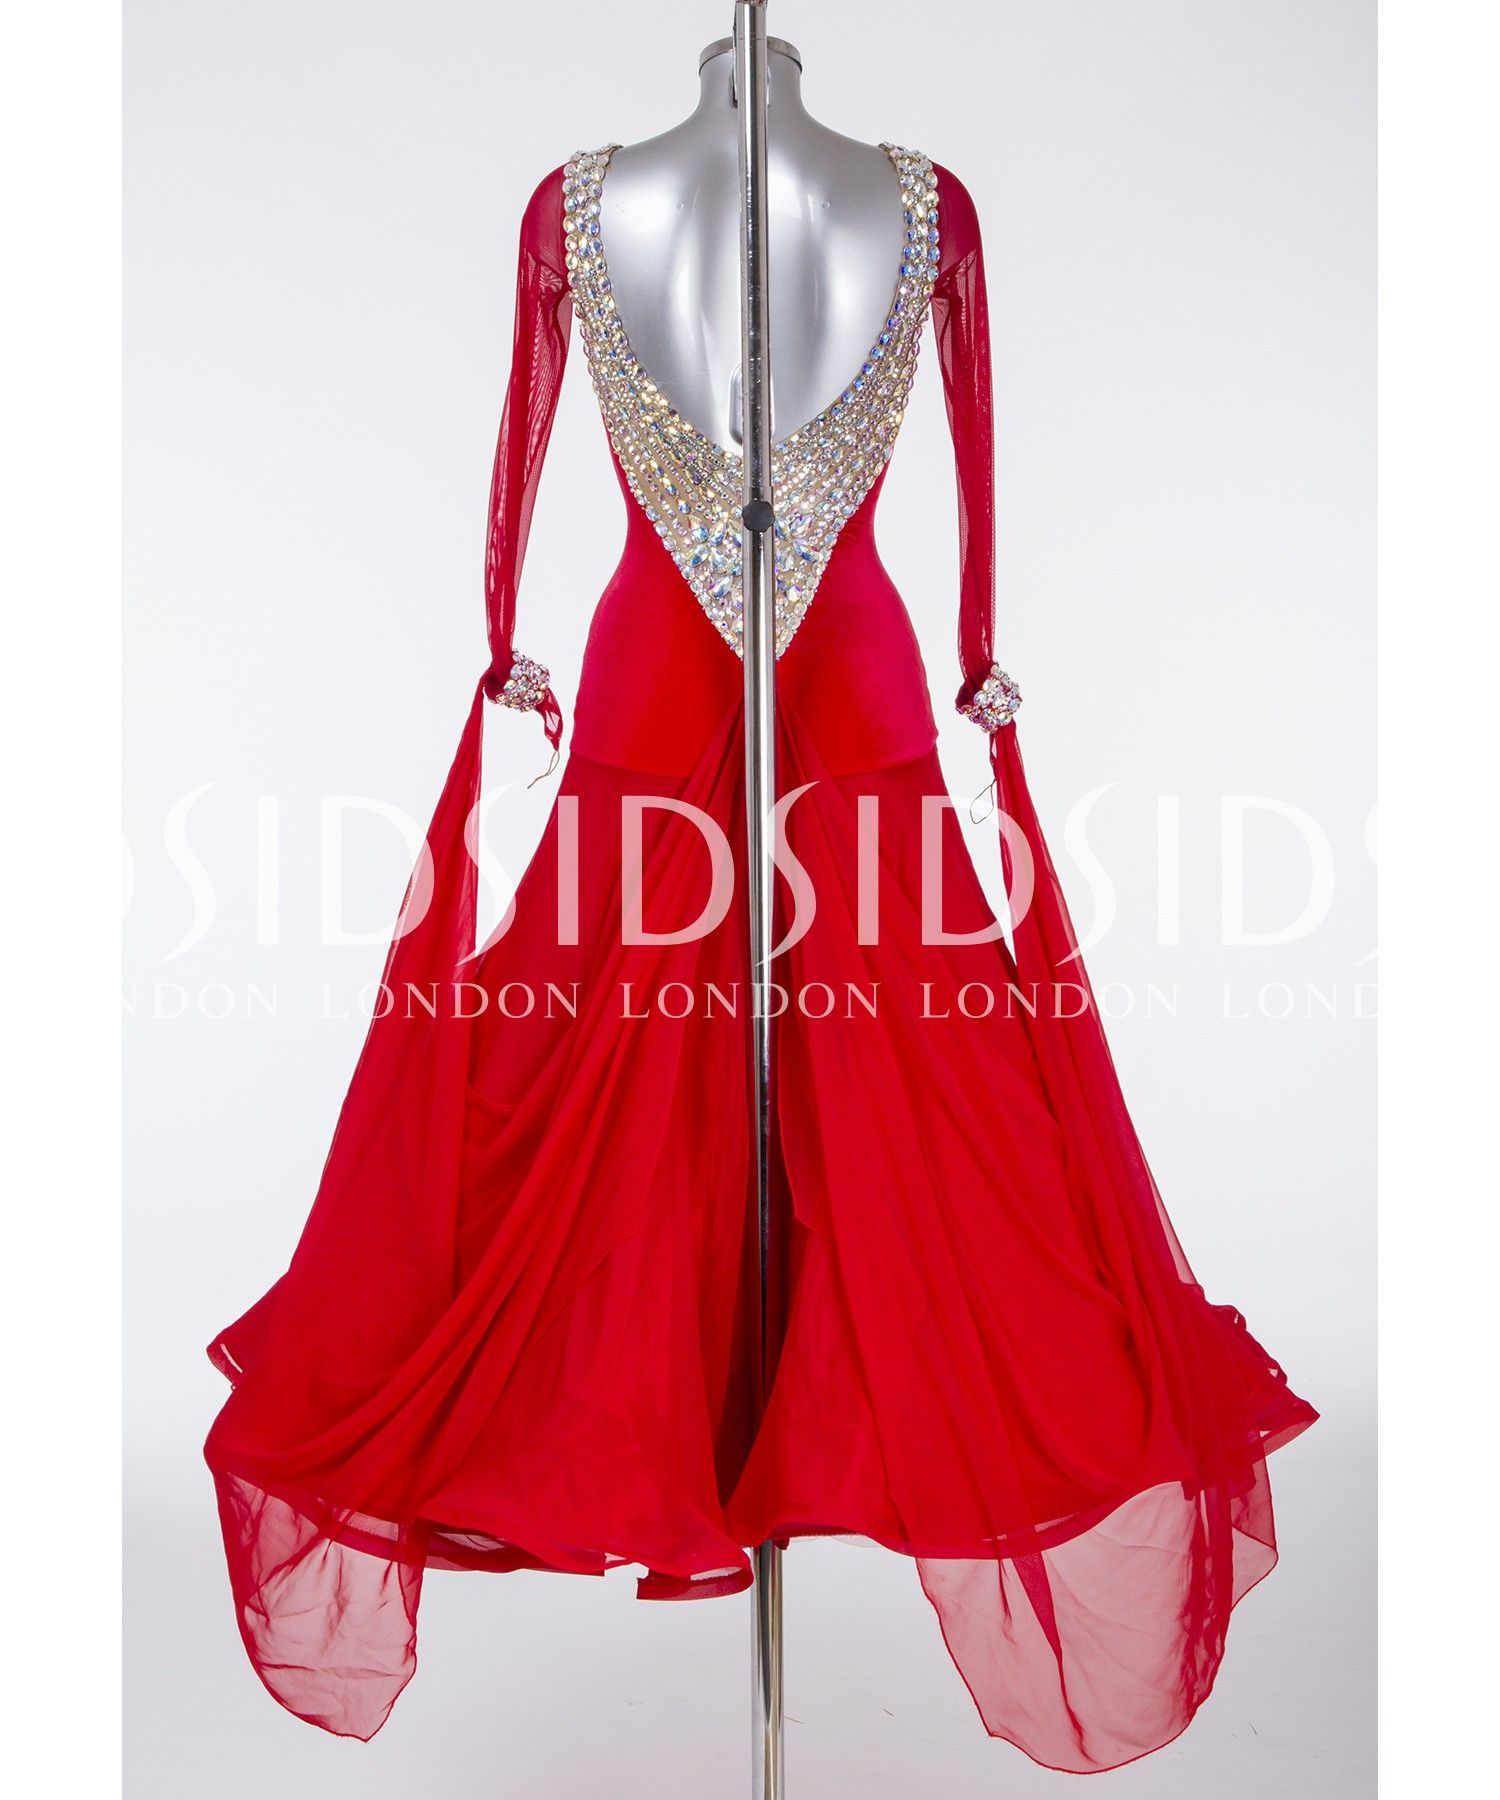 403053 Flamenco Ballroom Dress | Ballroom dresses for sale | Dance ...